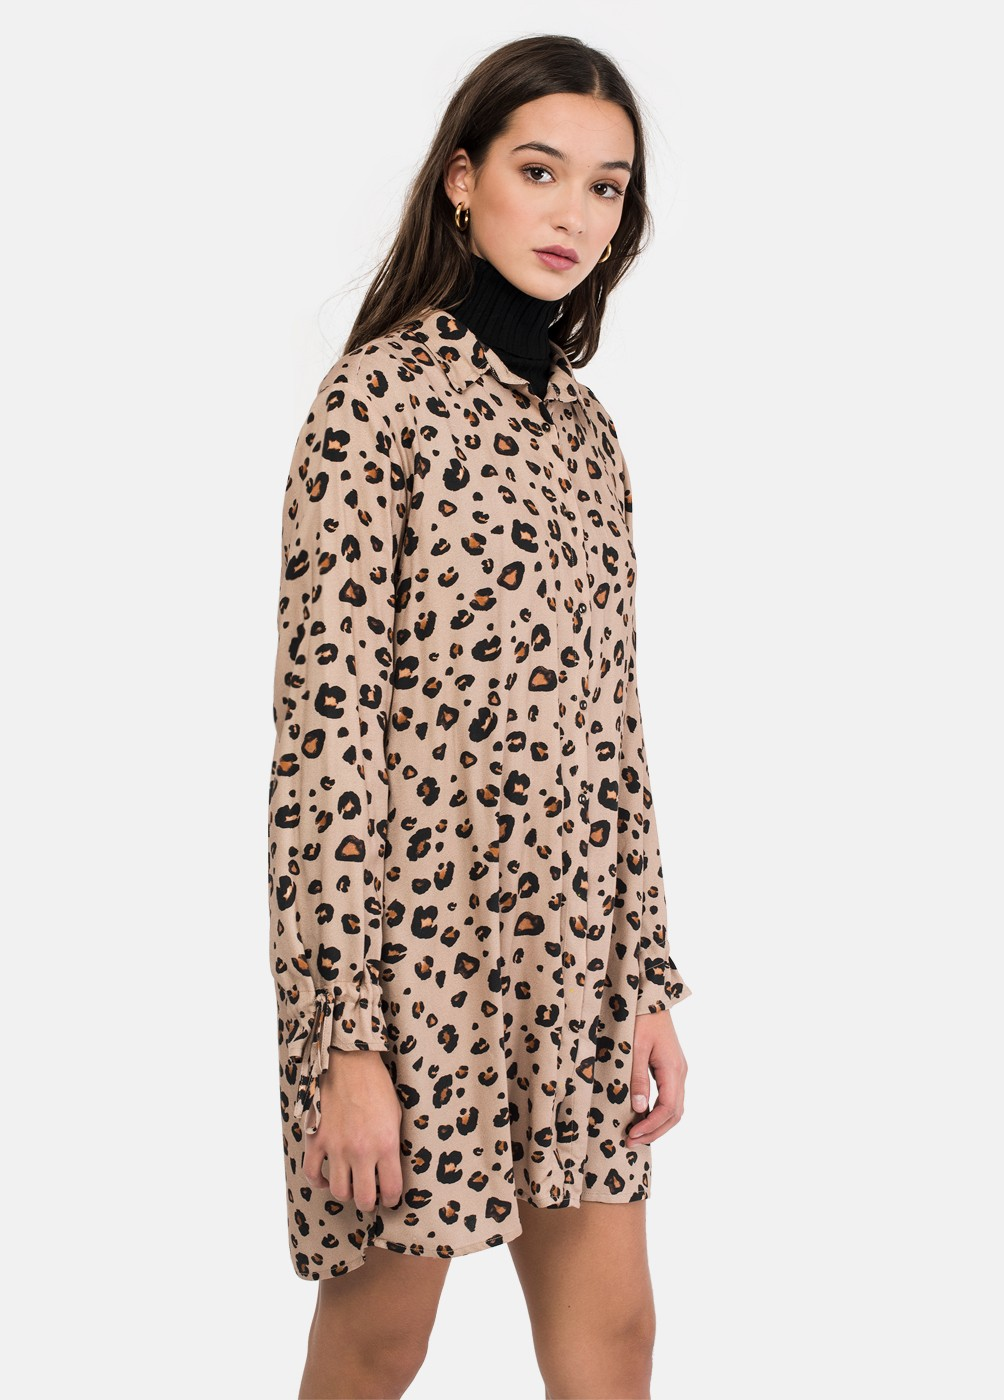 LIBRA ANIMAL PRINT SHIRT DRESS